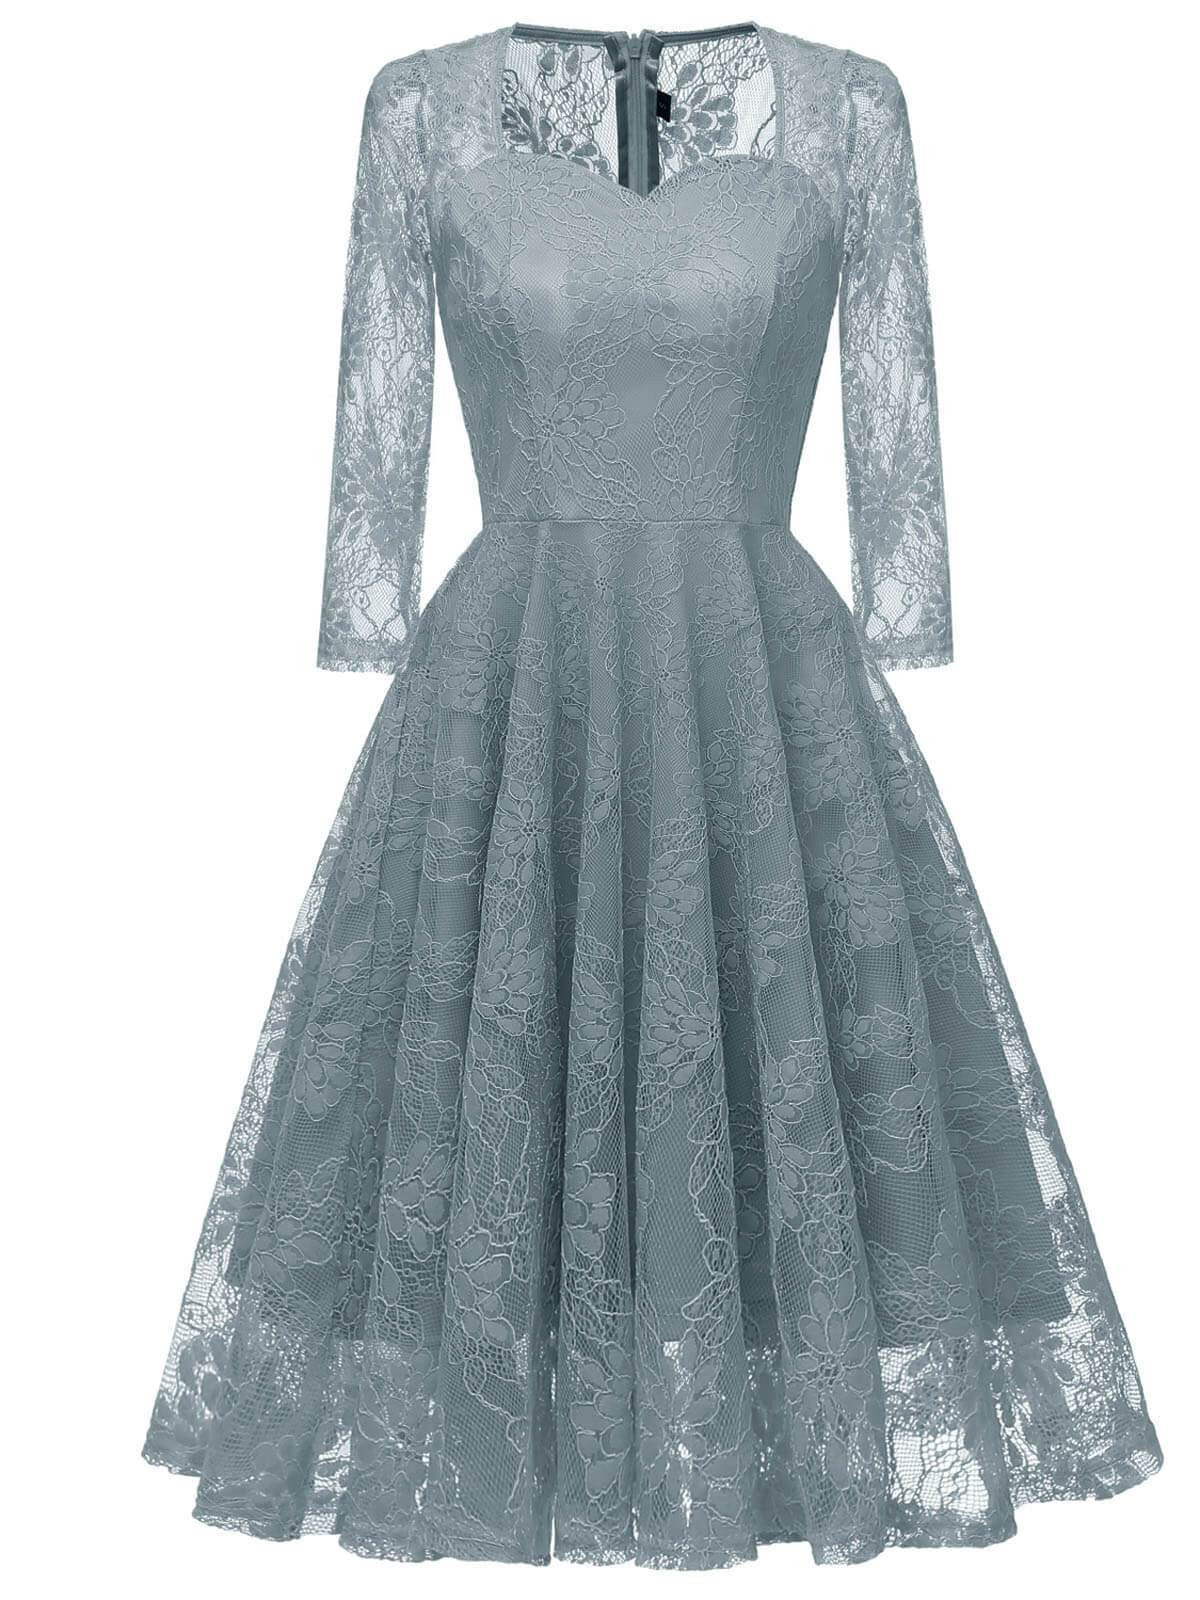 5cad7b76a2eb 1950s Lace 3/4 Sleeve Swing Dress - Retro Stage - Chic Vintage ...